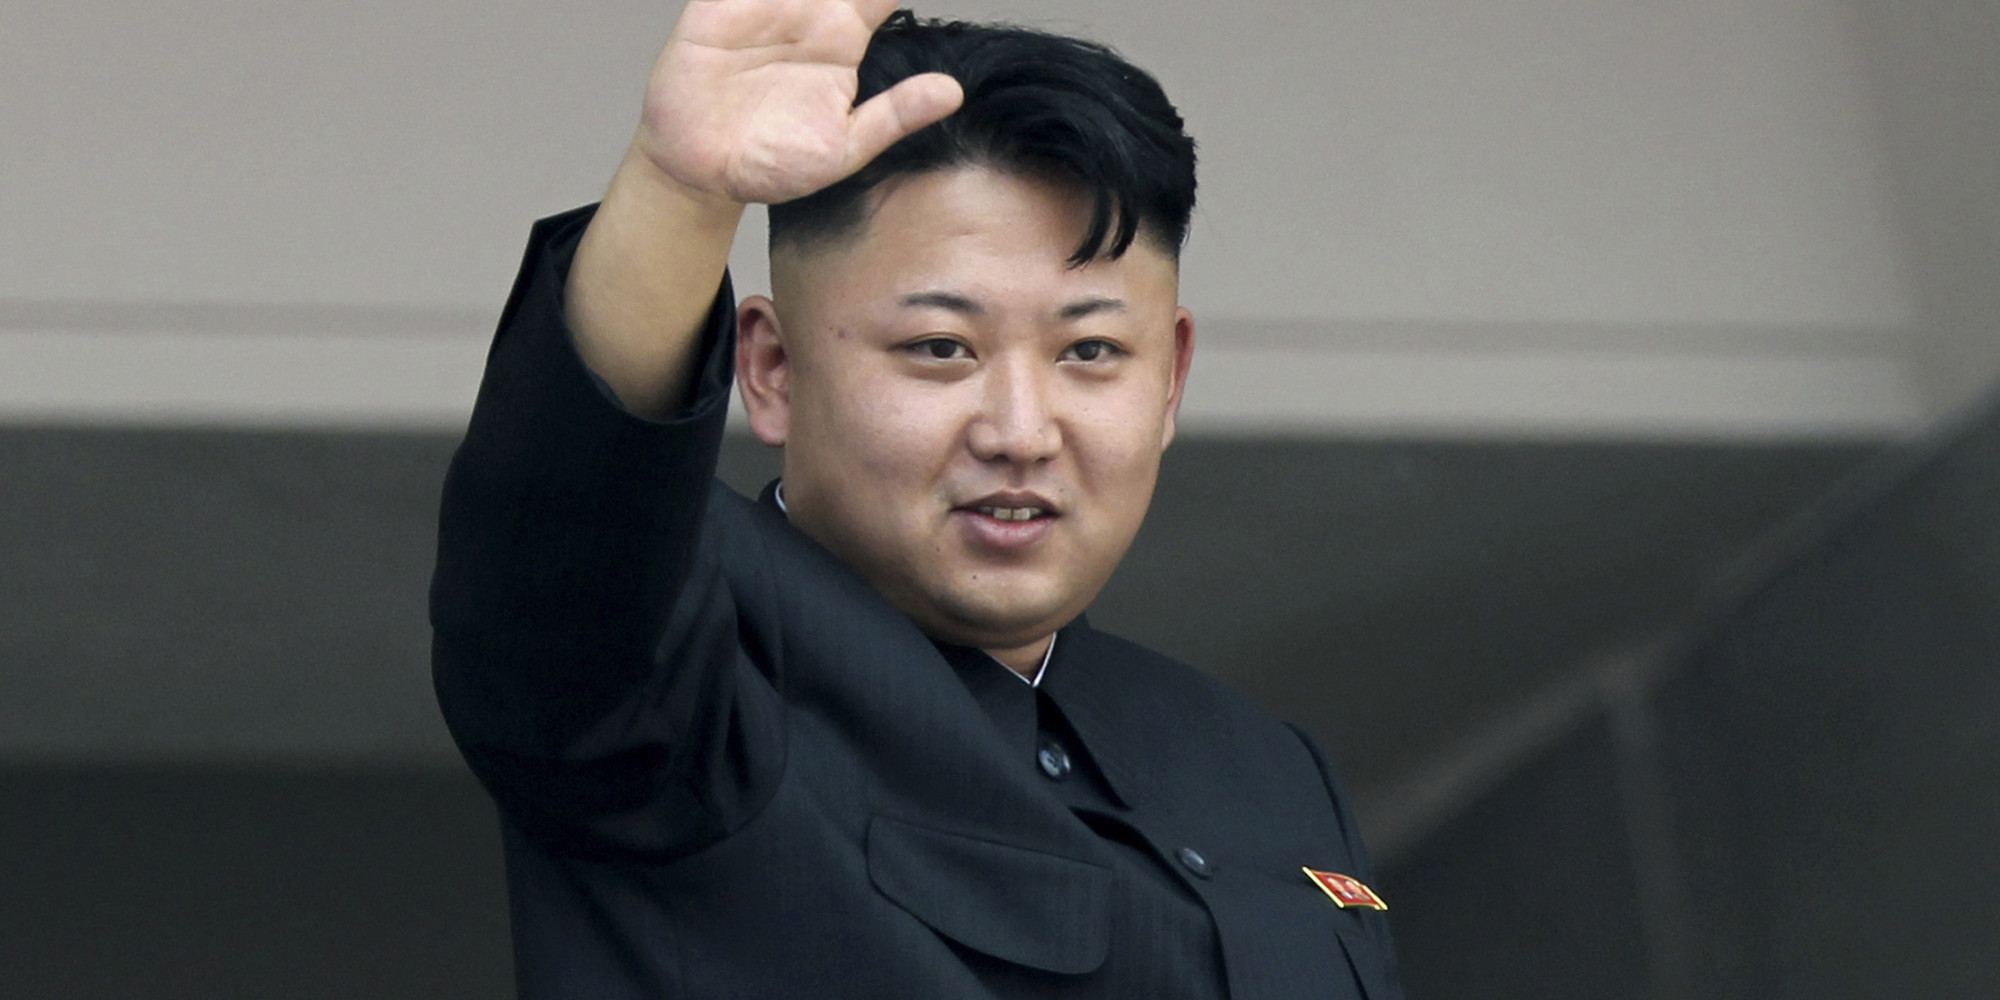 Kim Jong Un Debuts Sculptured New Haircut And Trimmed Eyebrows